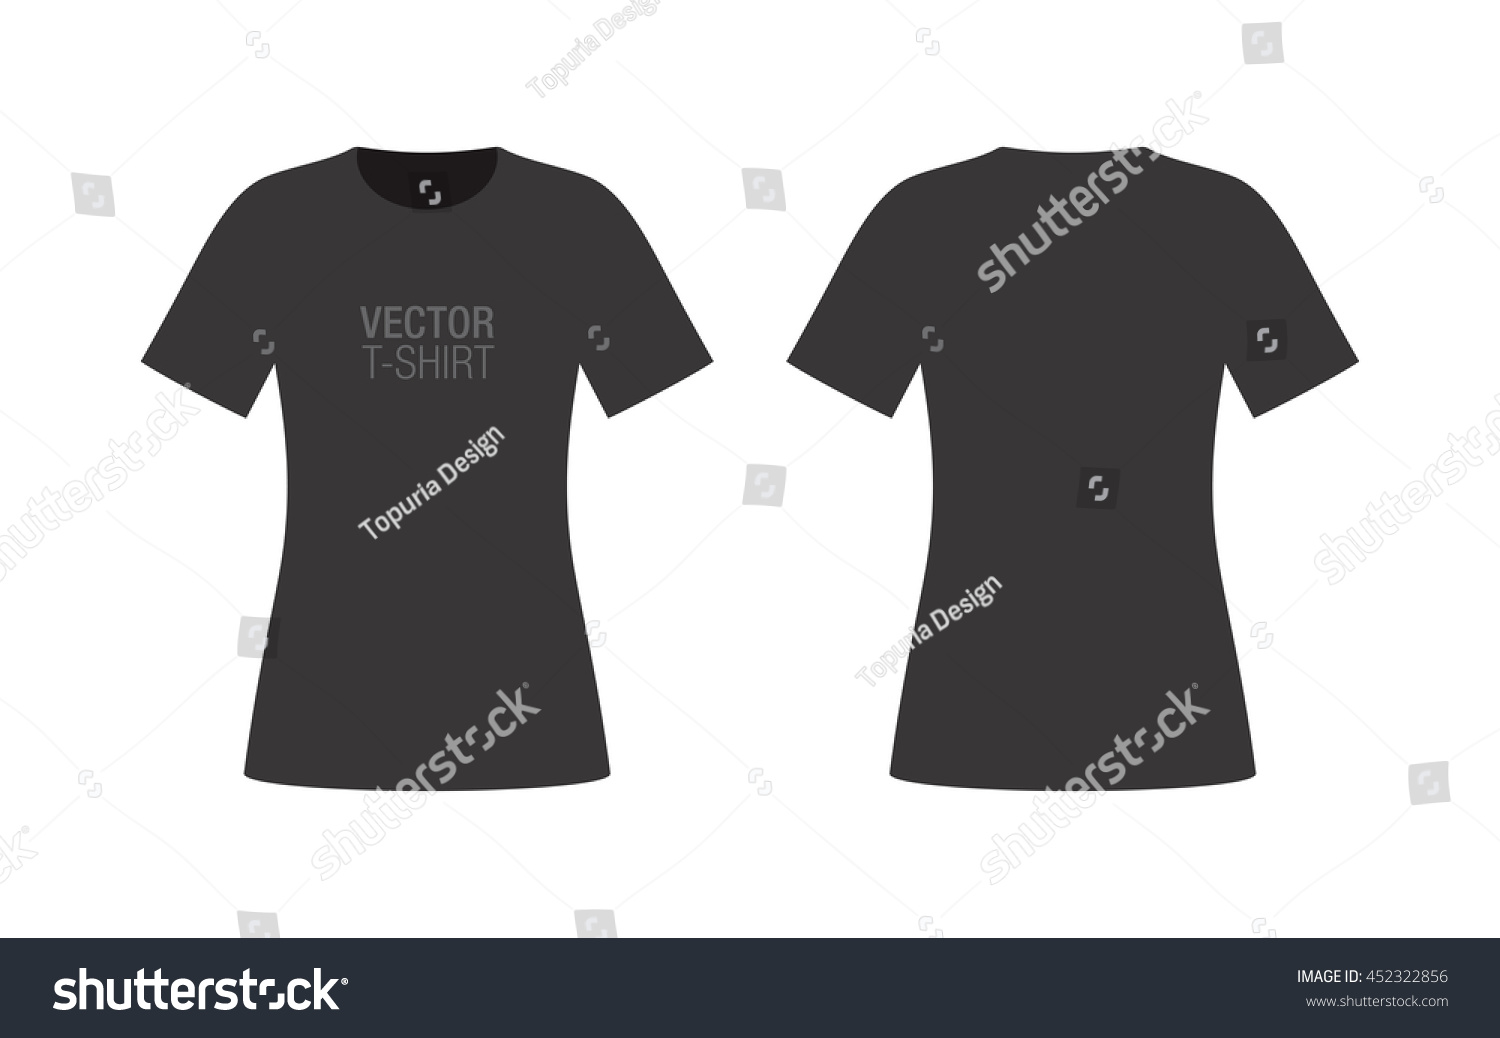 Black t shirt model template - Vector Shirt Mockup Women S Black Short Sleeve T Shirt Template Front And Back